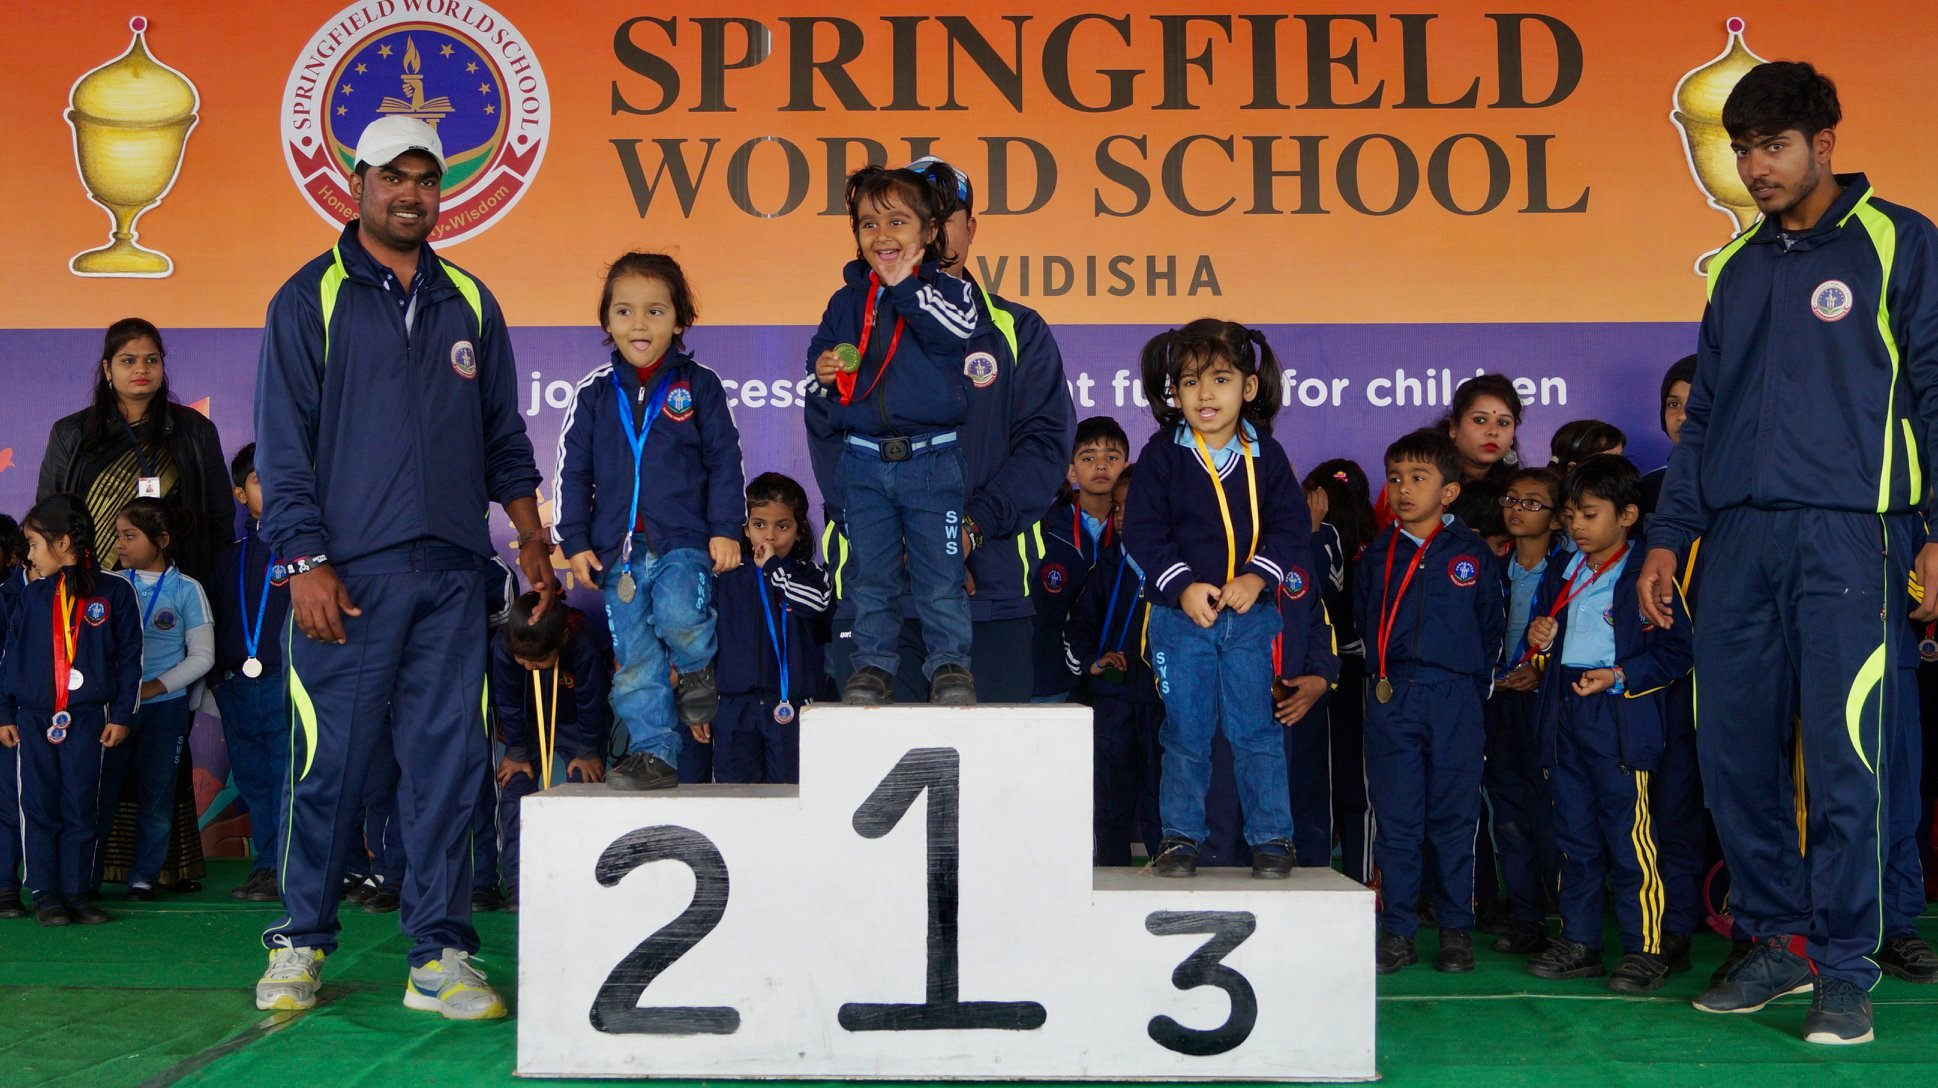 Springfield World School - News & Media